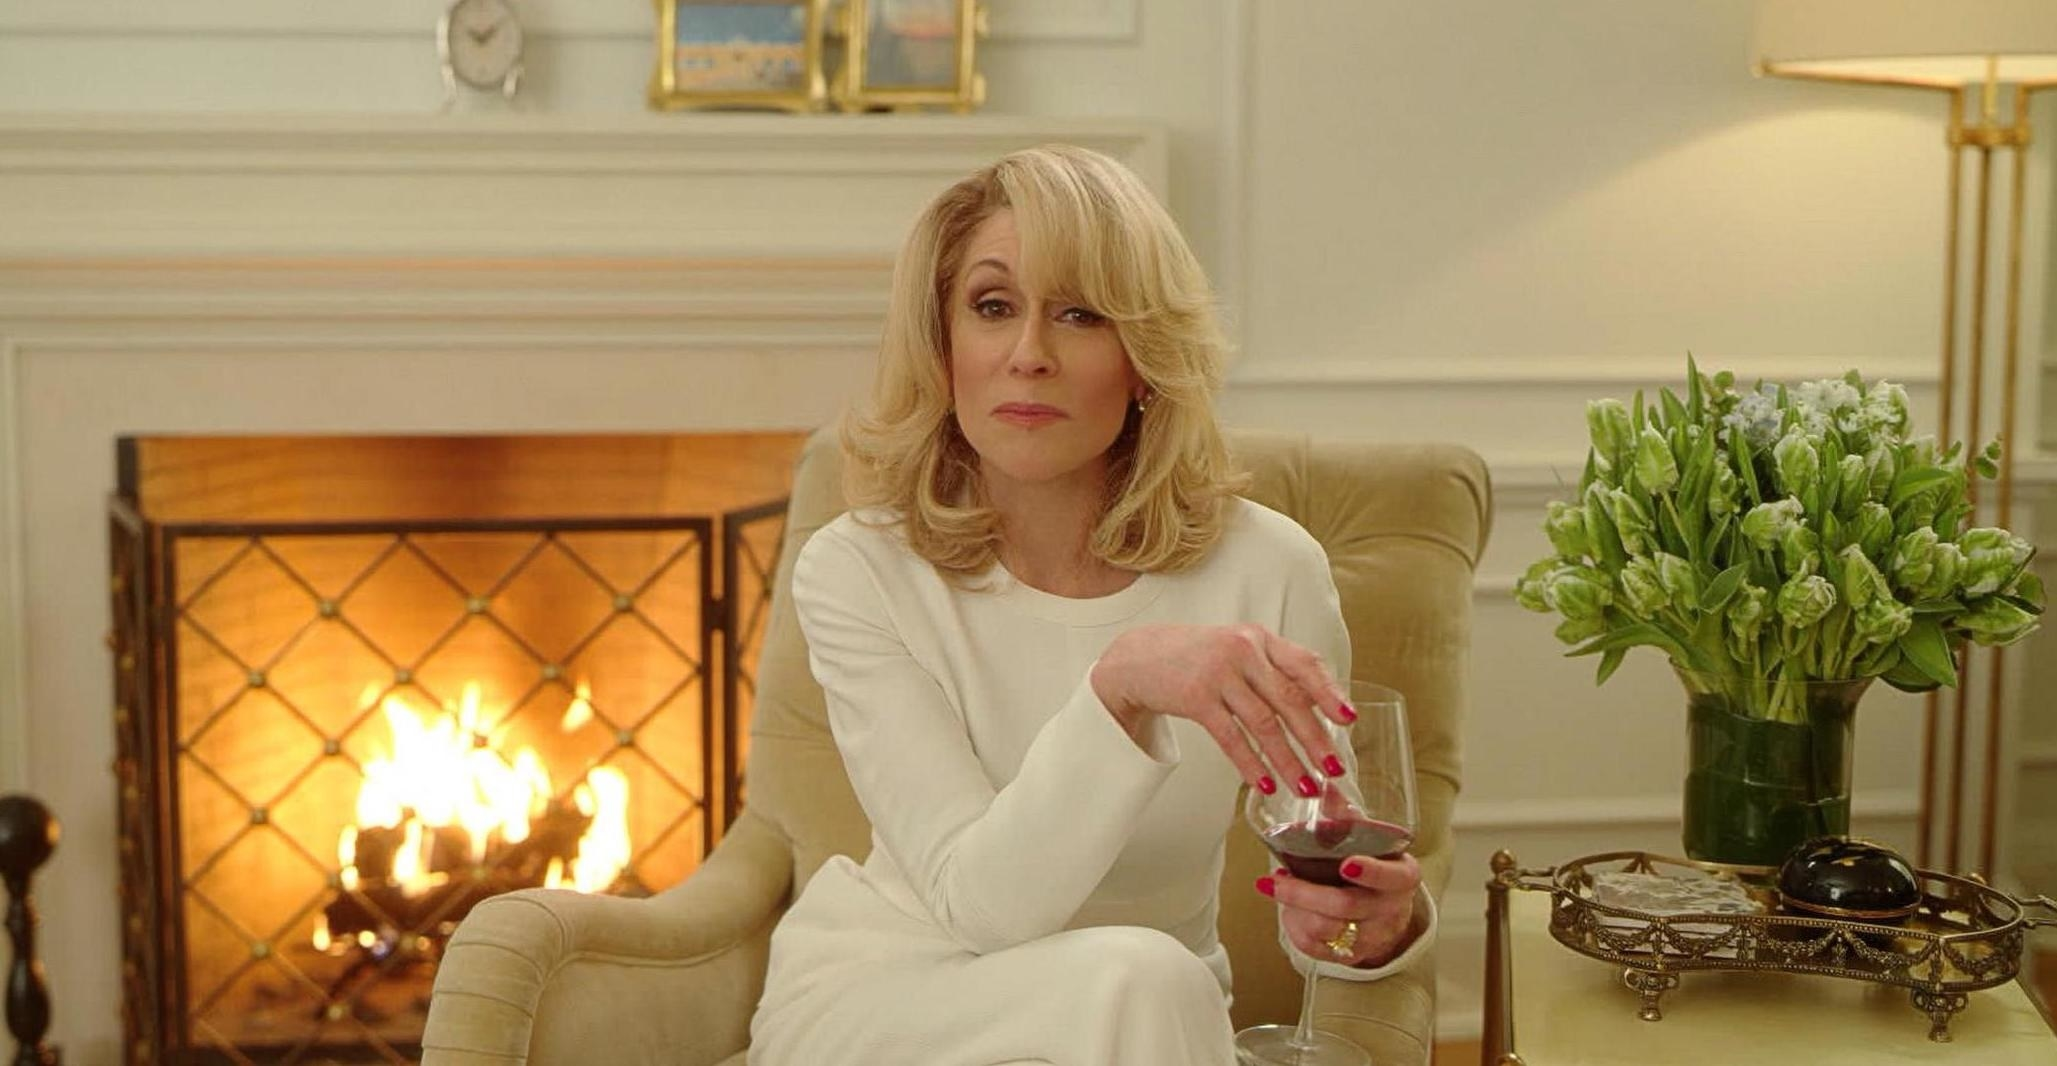 A still from The Politician showing Judith Light as Dede Standish sitting in a very white living room with a fire and a glass of wine looking into the camera. She wears a white dress and has perfectly blown out hair